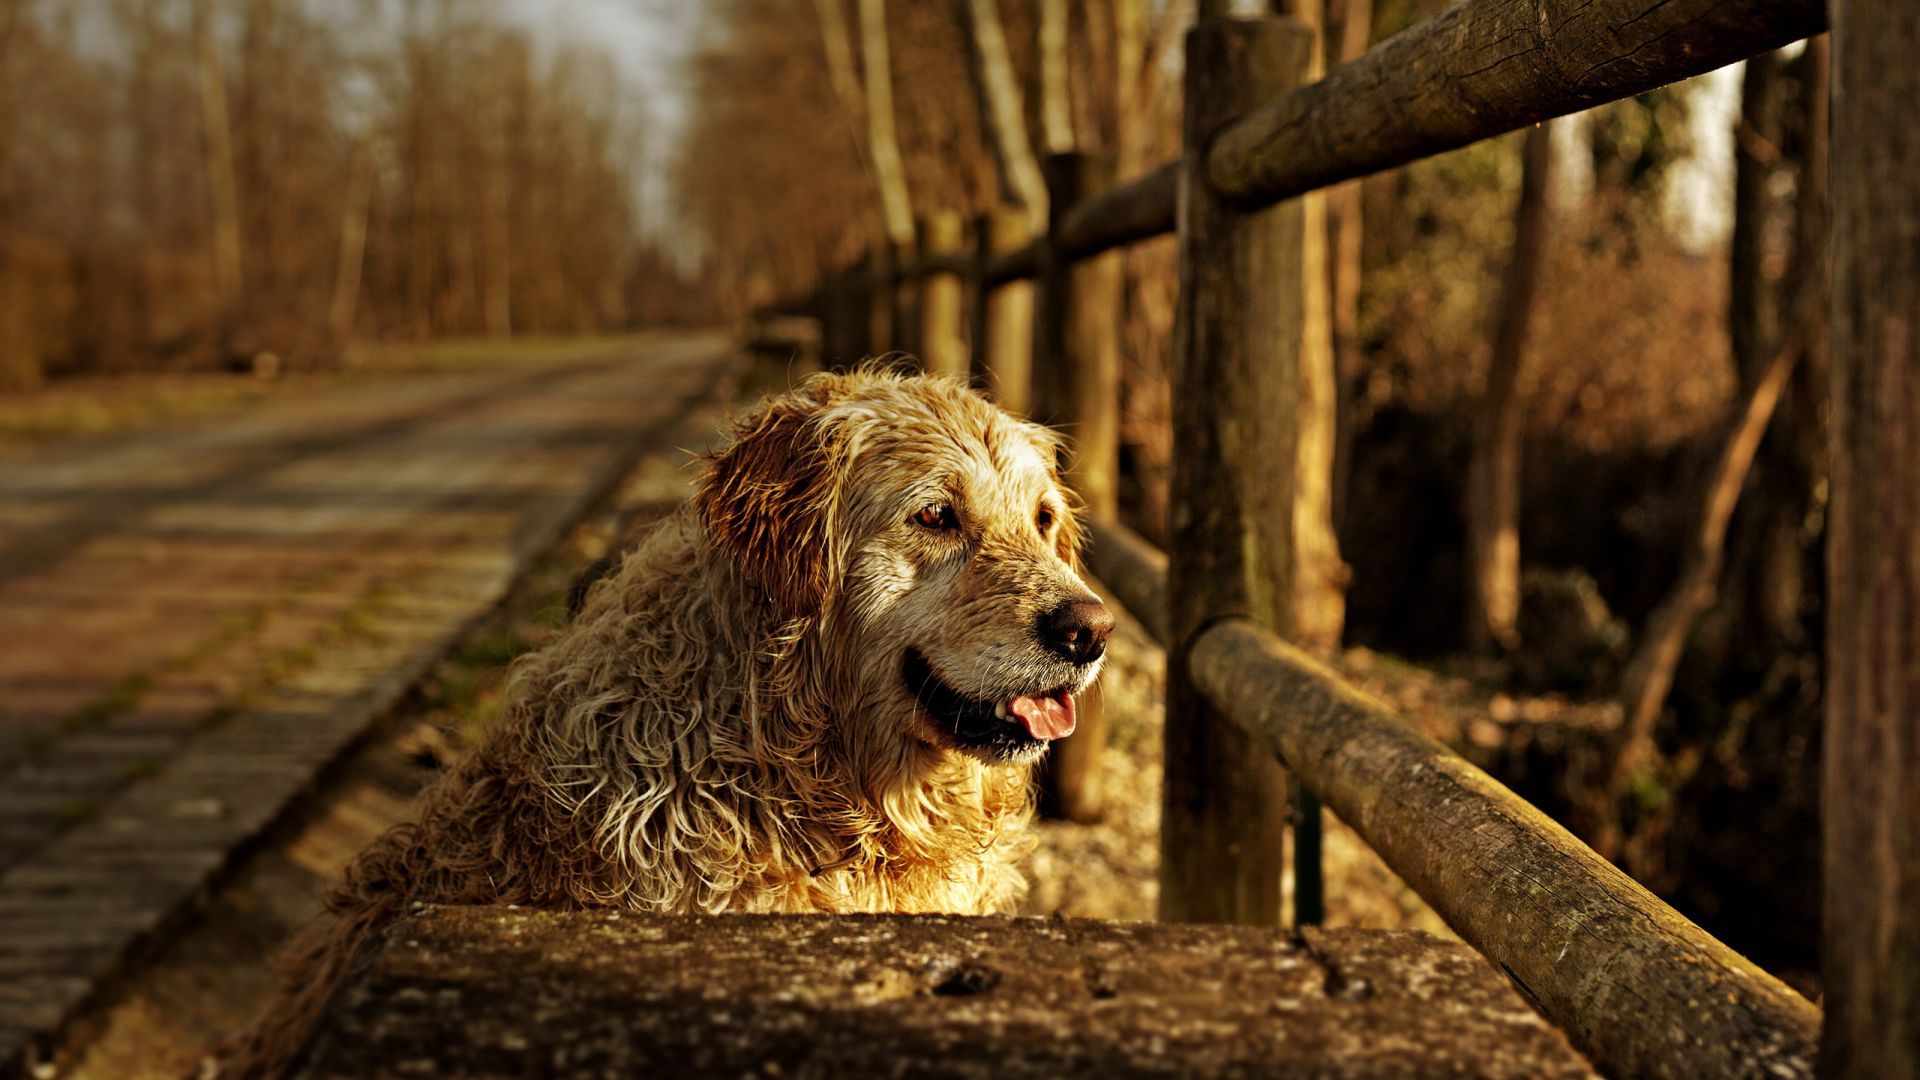 Wallpaper Furry, animal, wooden fence, dog